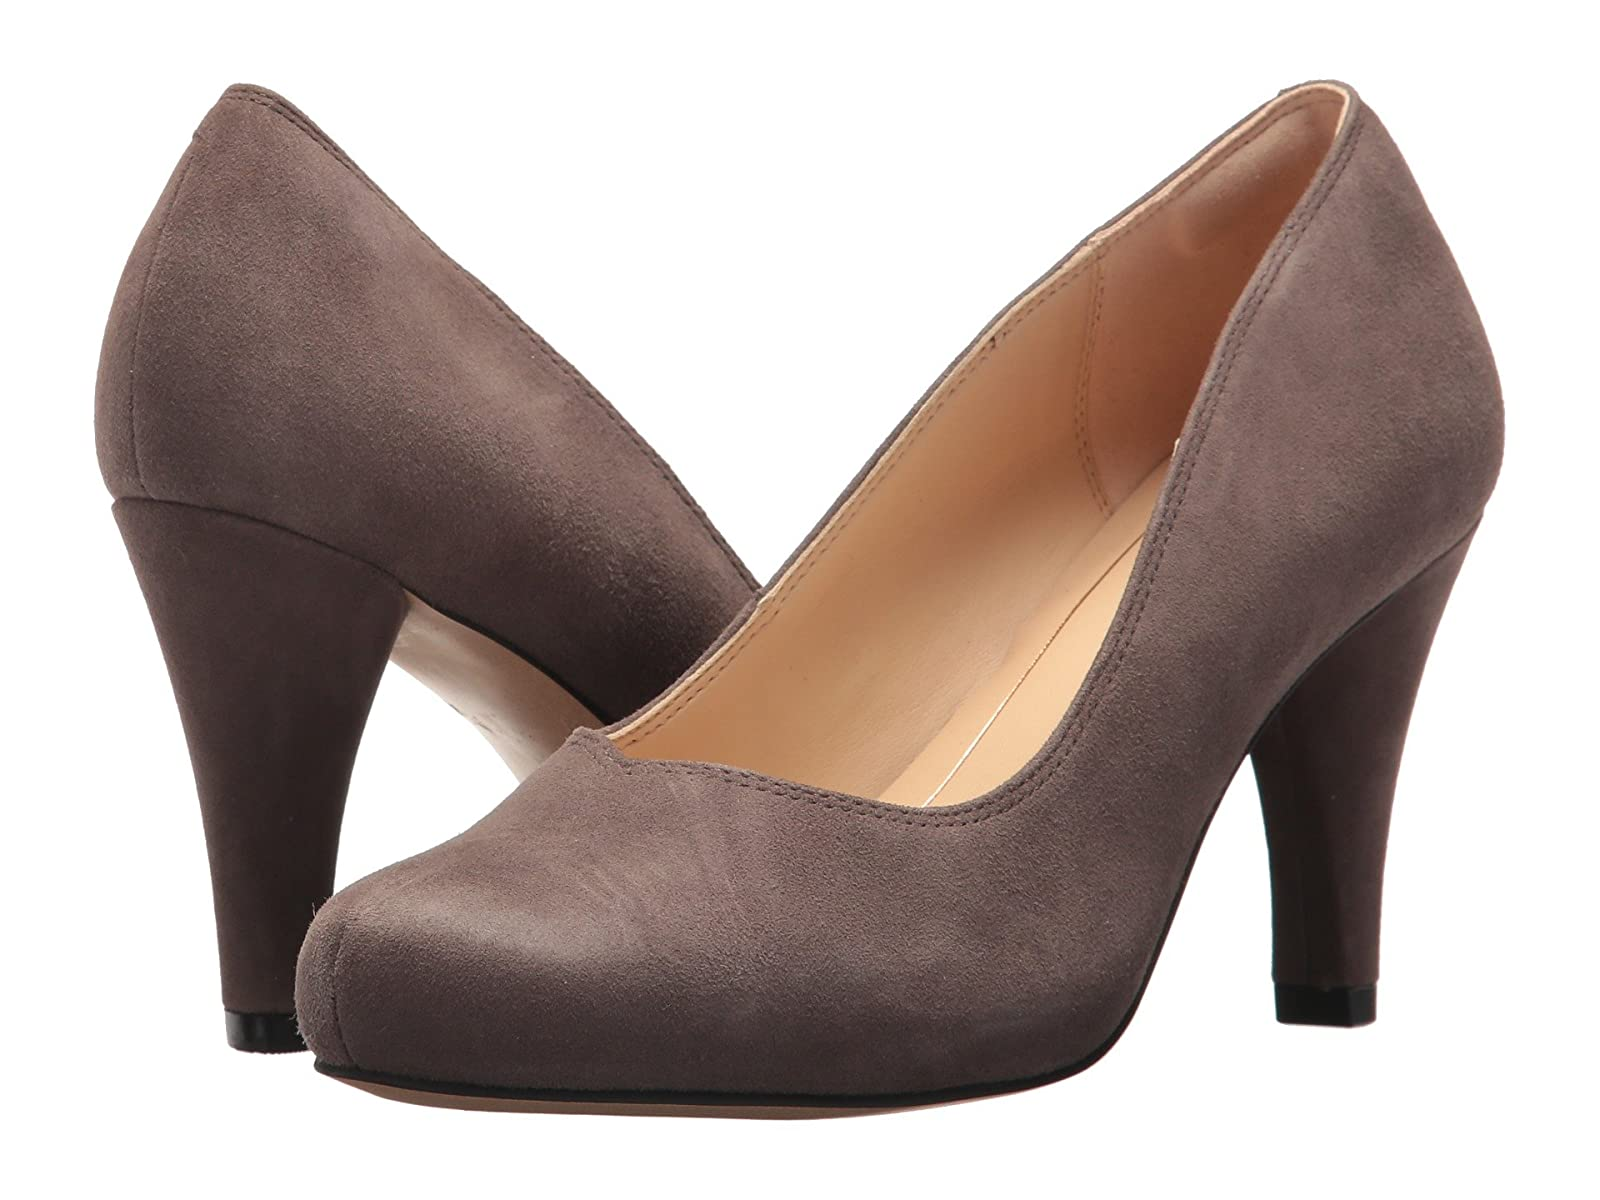 Clarks Dalia RoseCheap and distinctive eye-catching shoes